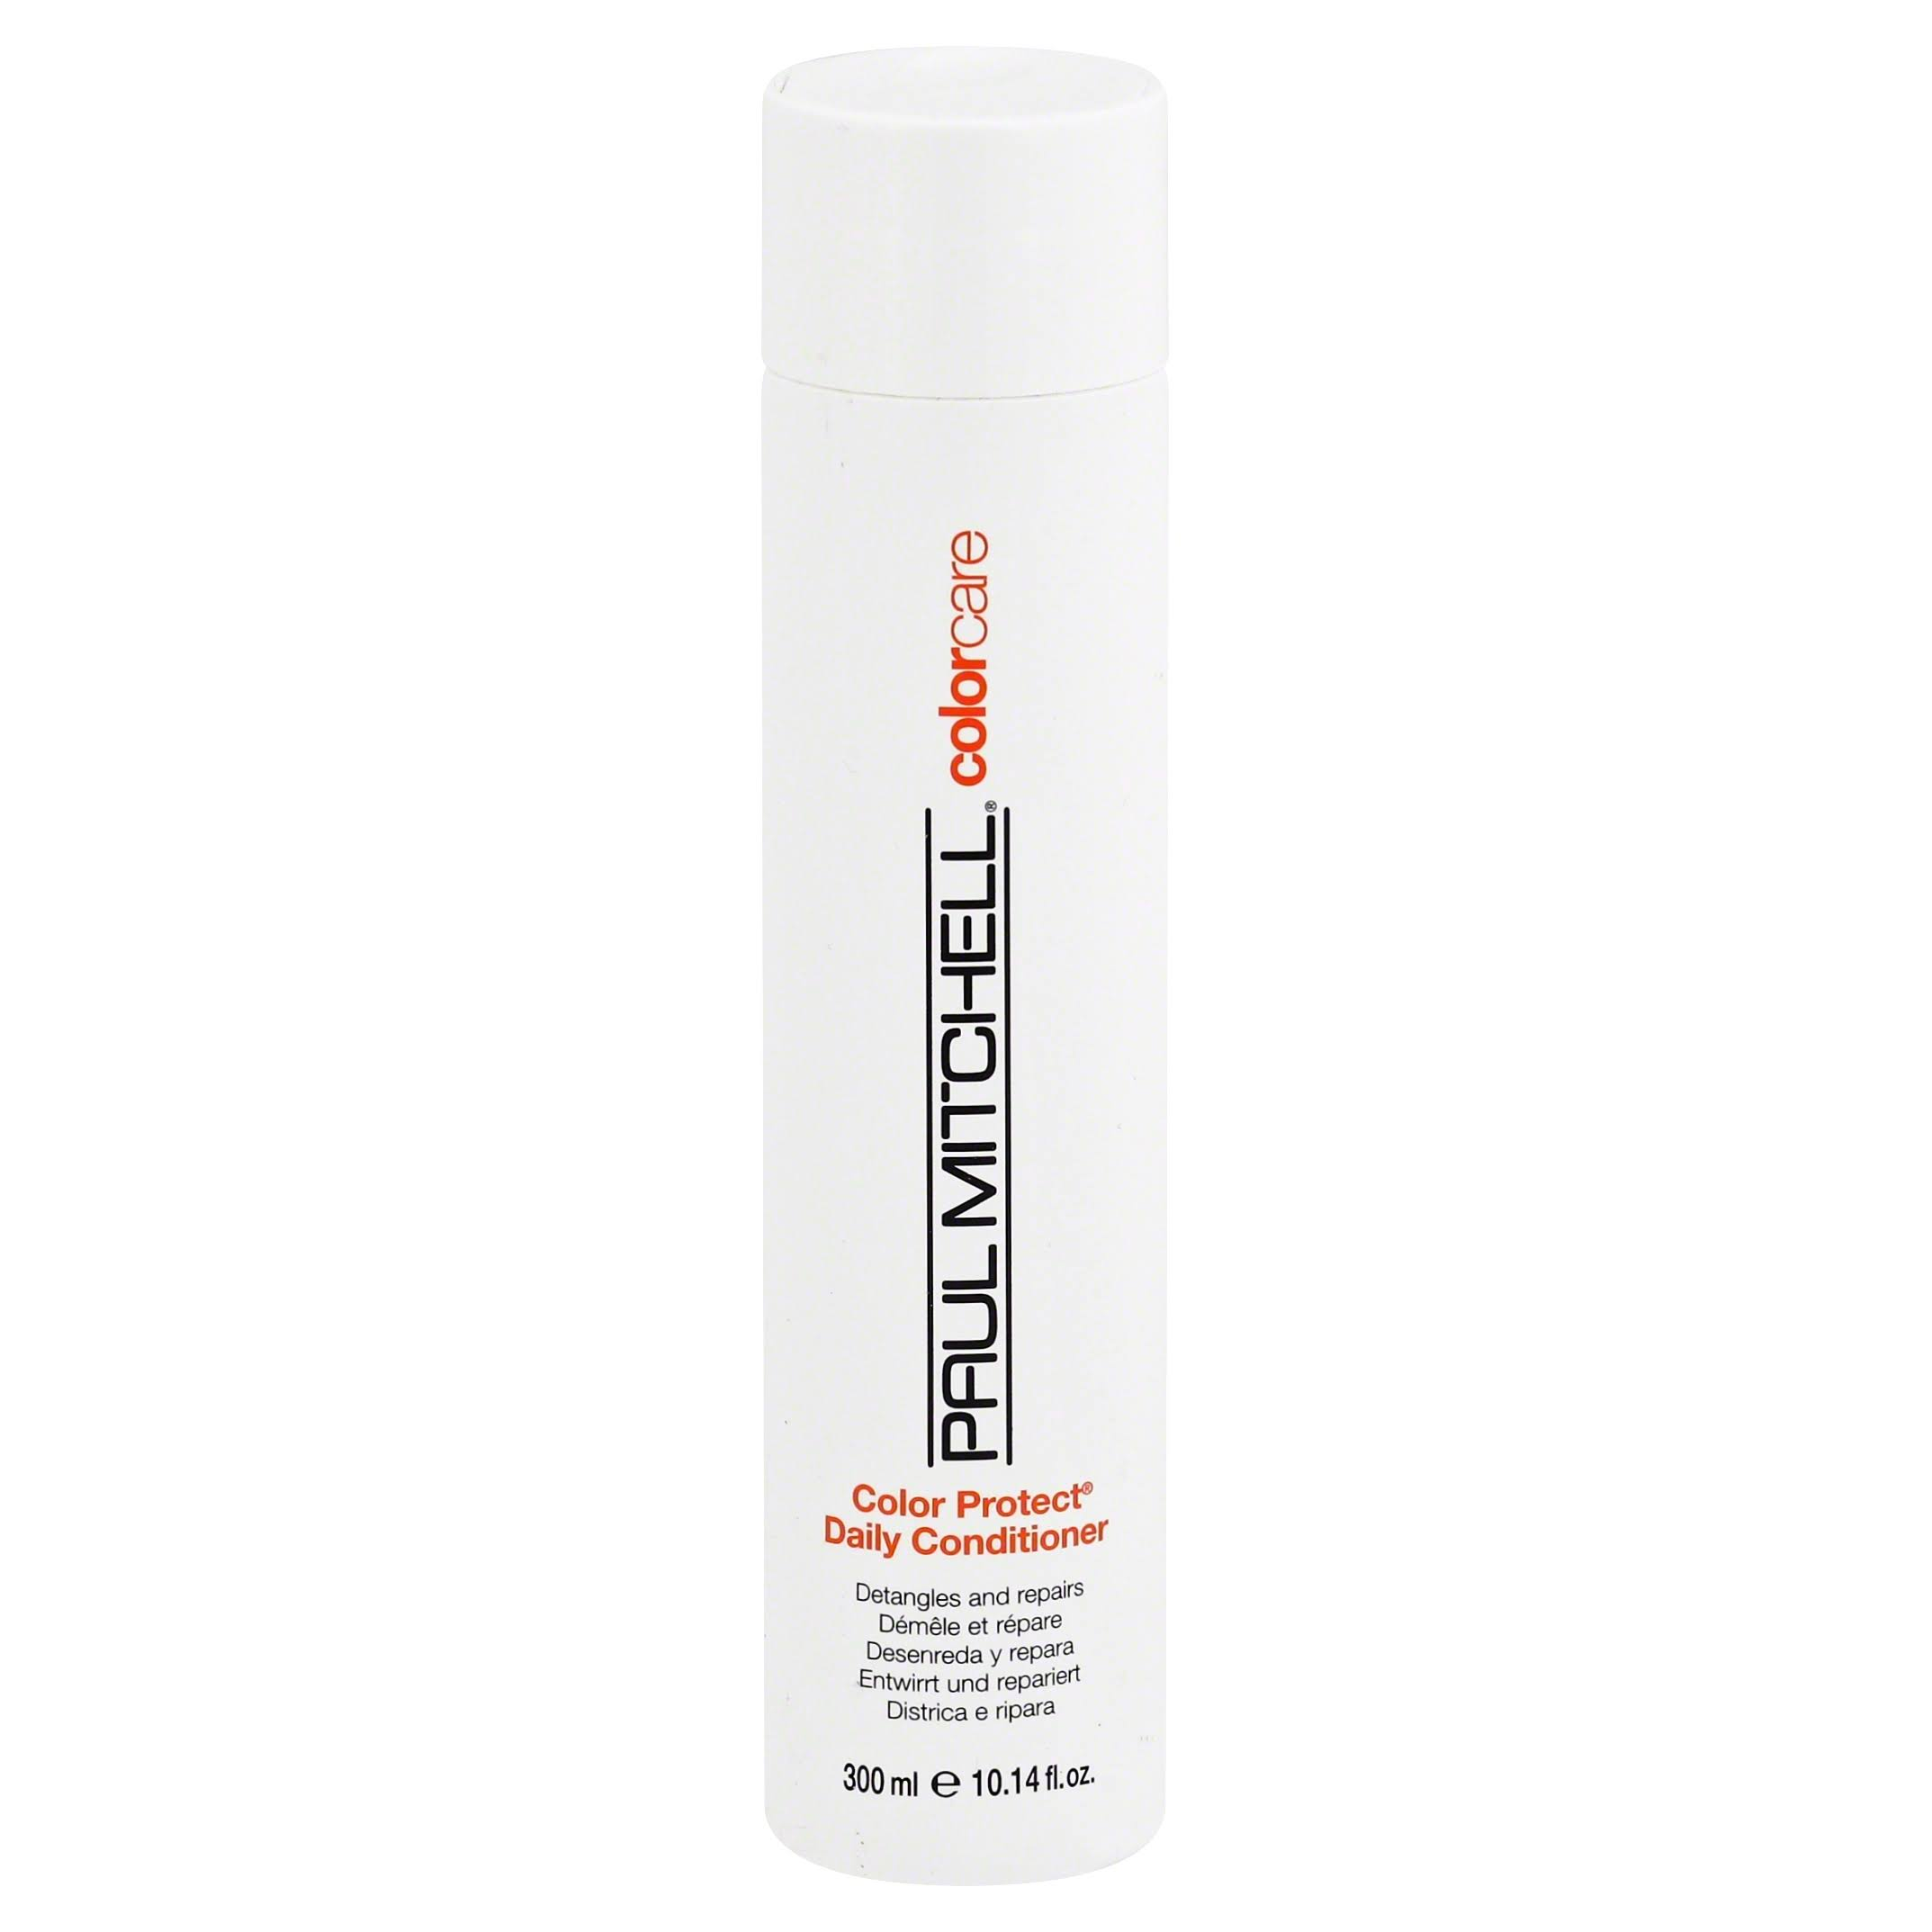 Paul Mitchell Color Protect Daily Conditioner - 300ml